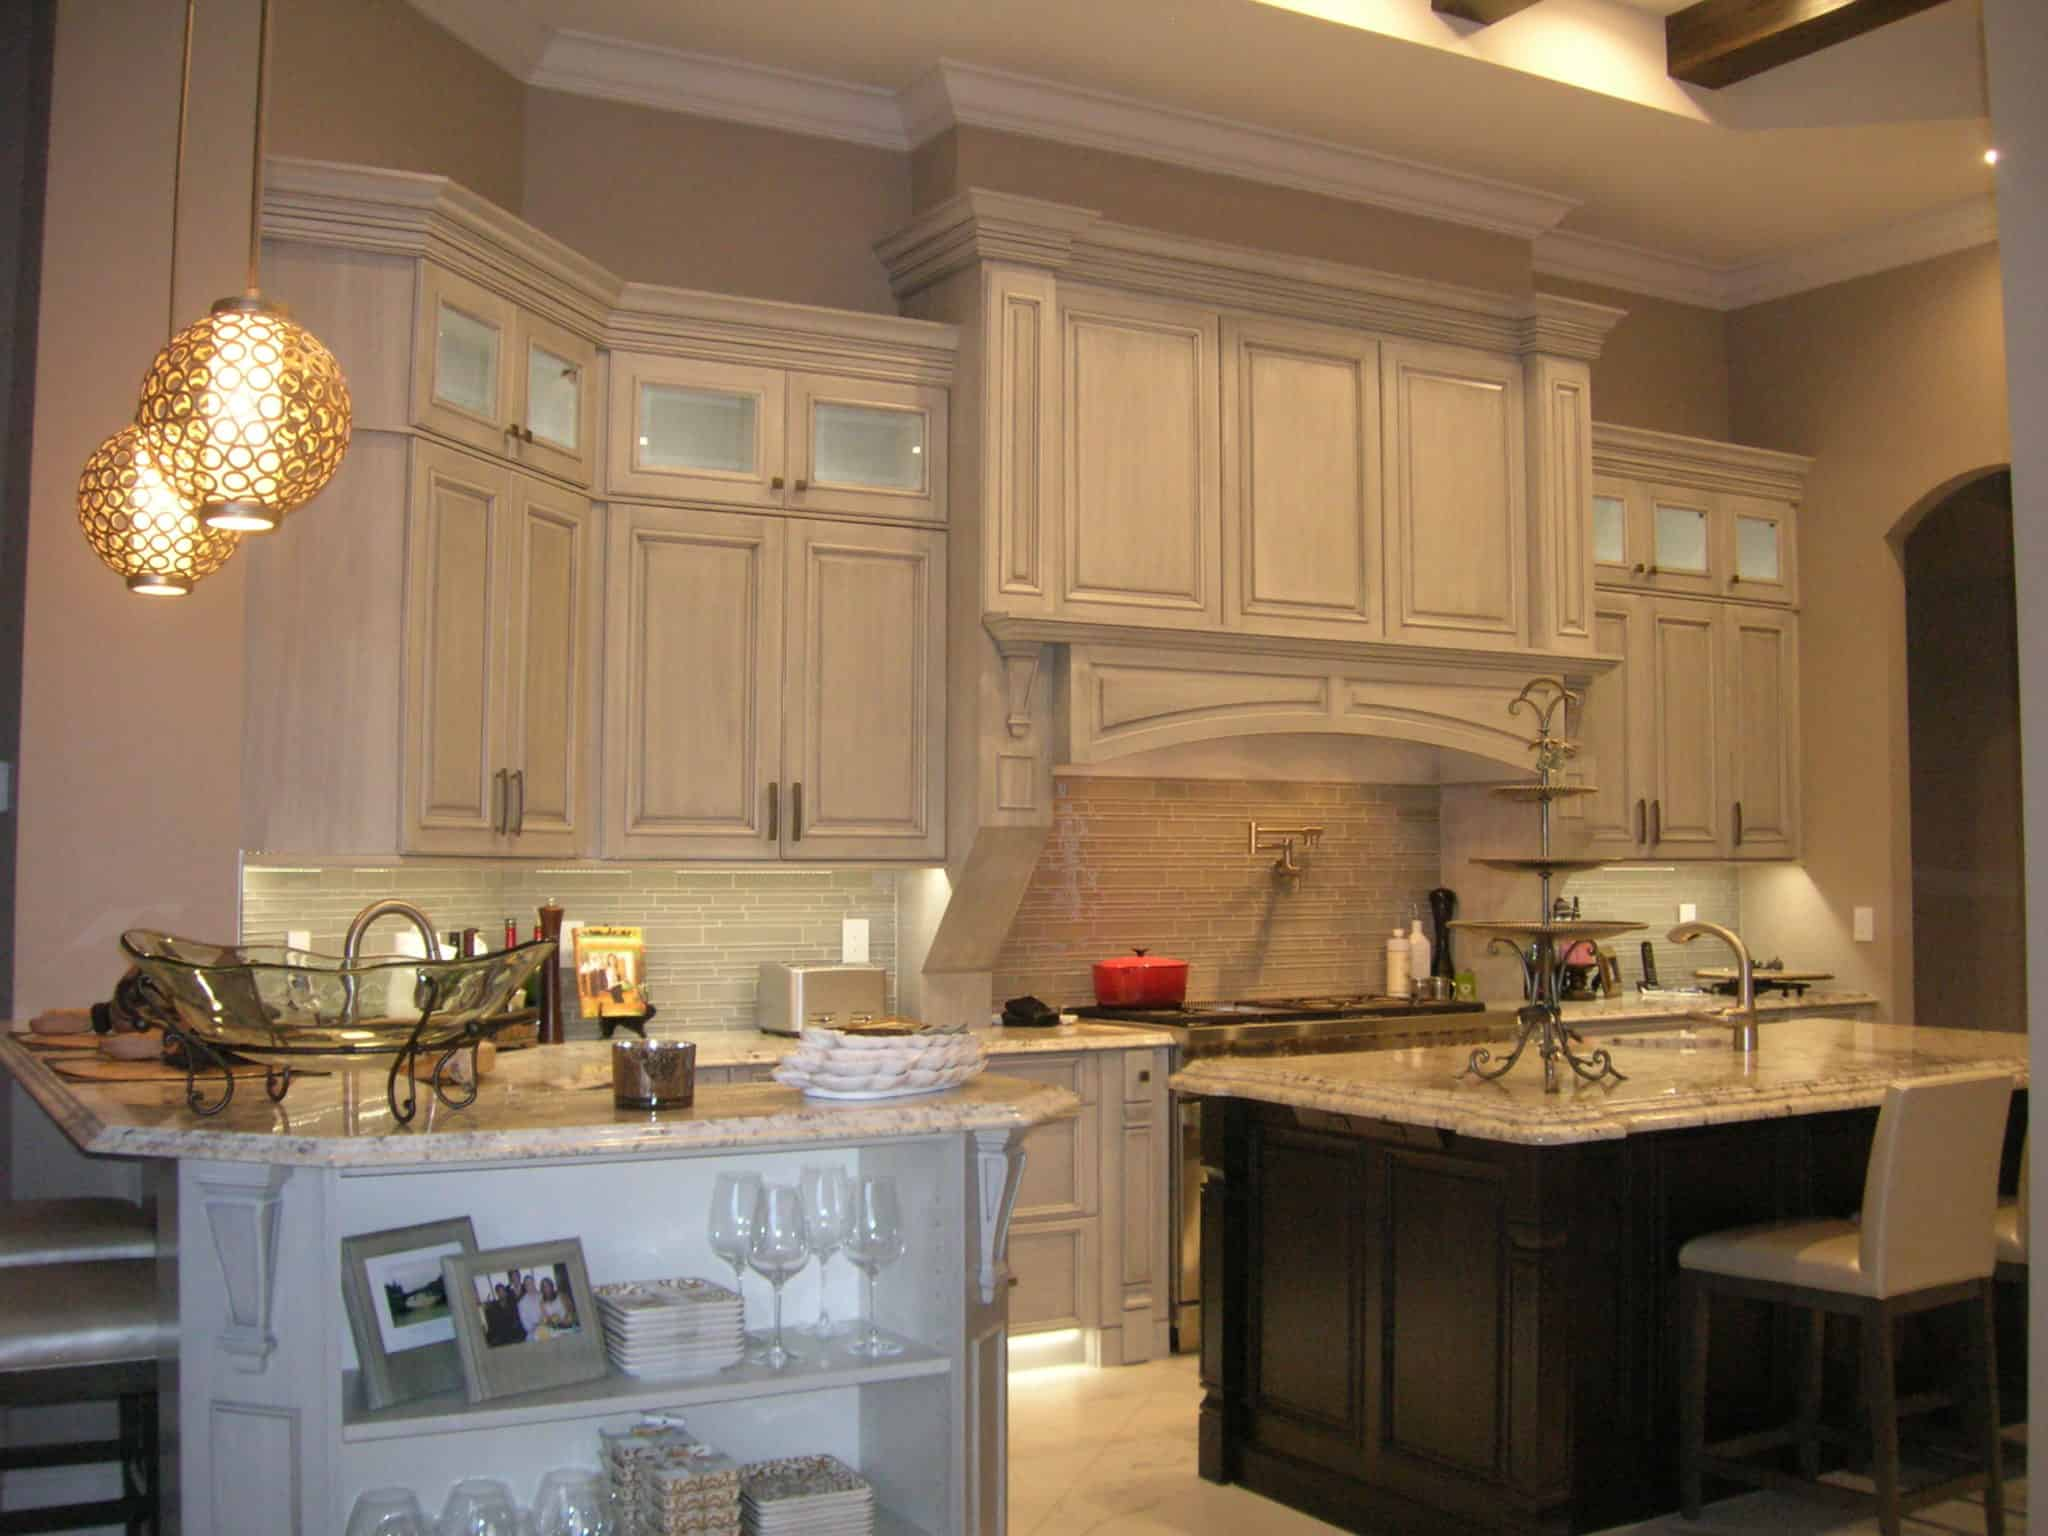 Incroyable High Quality White Kitchen Cabinets